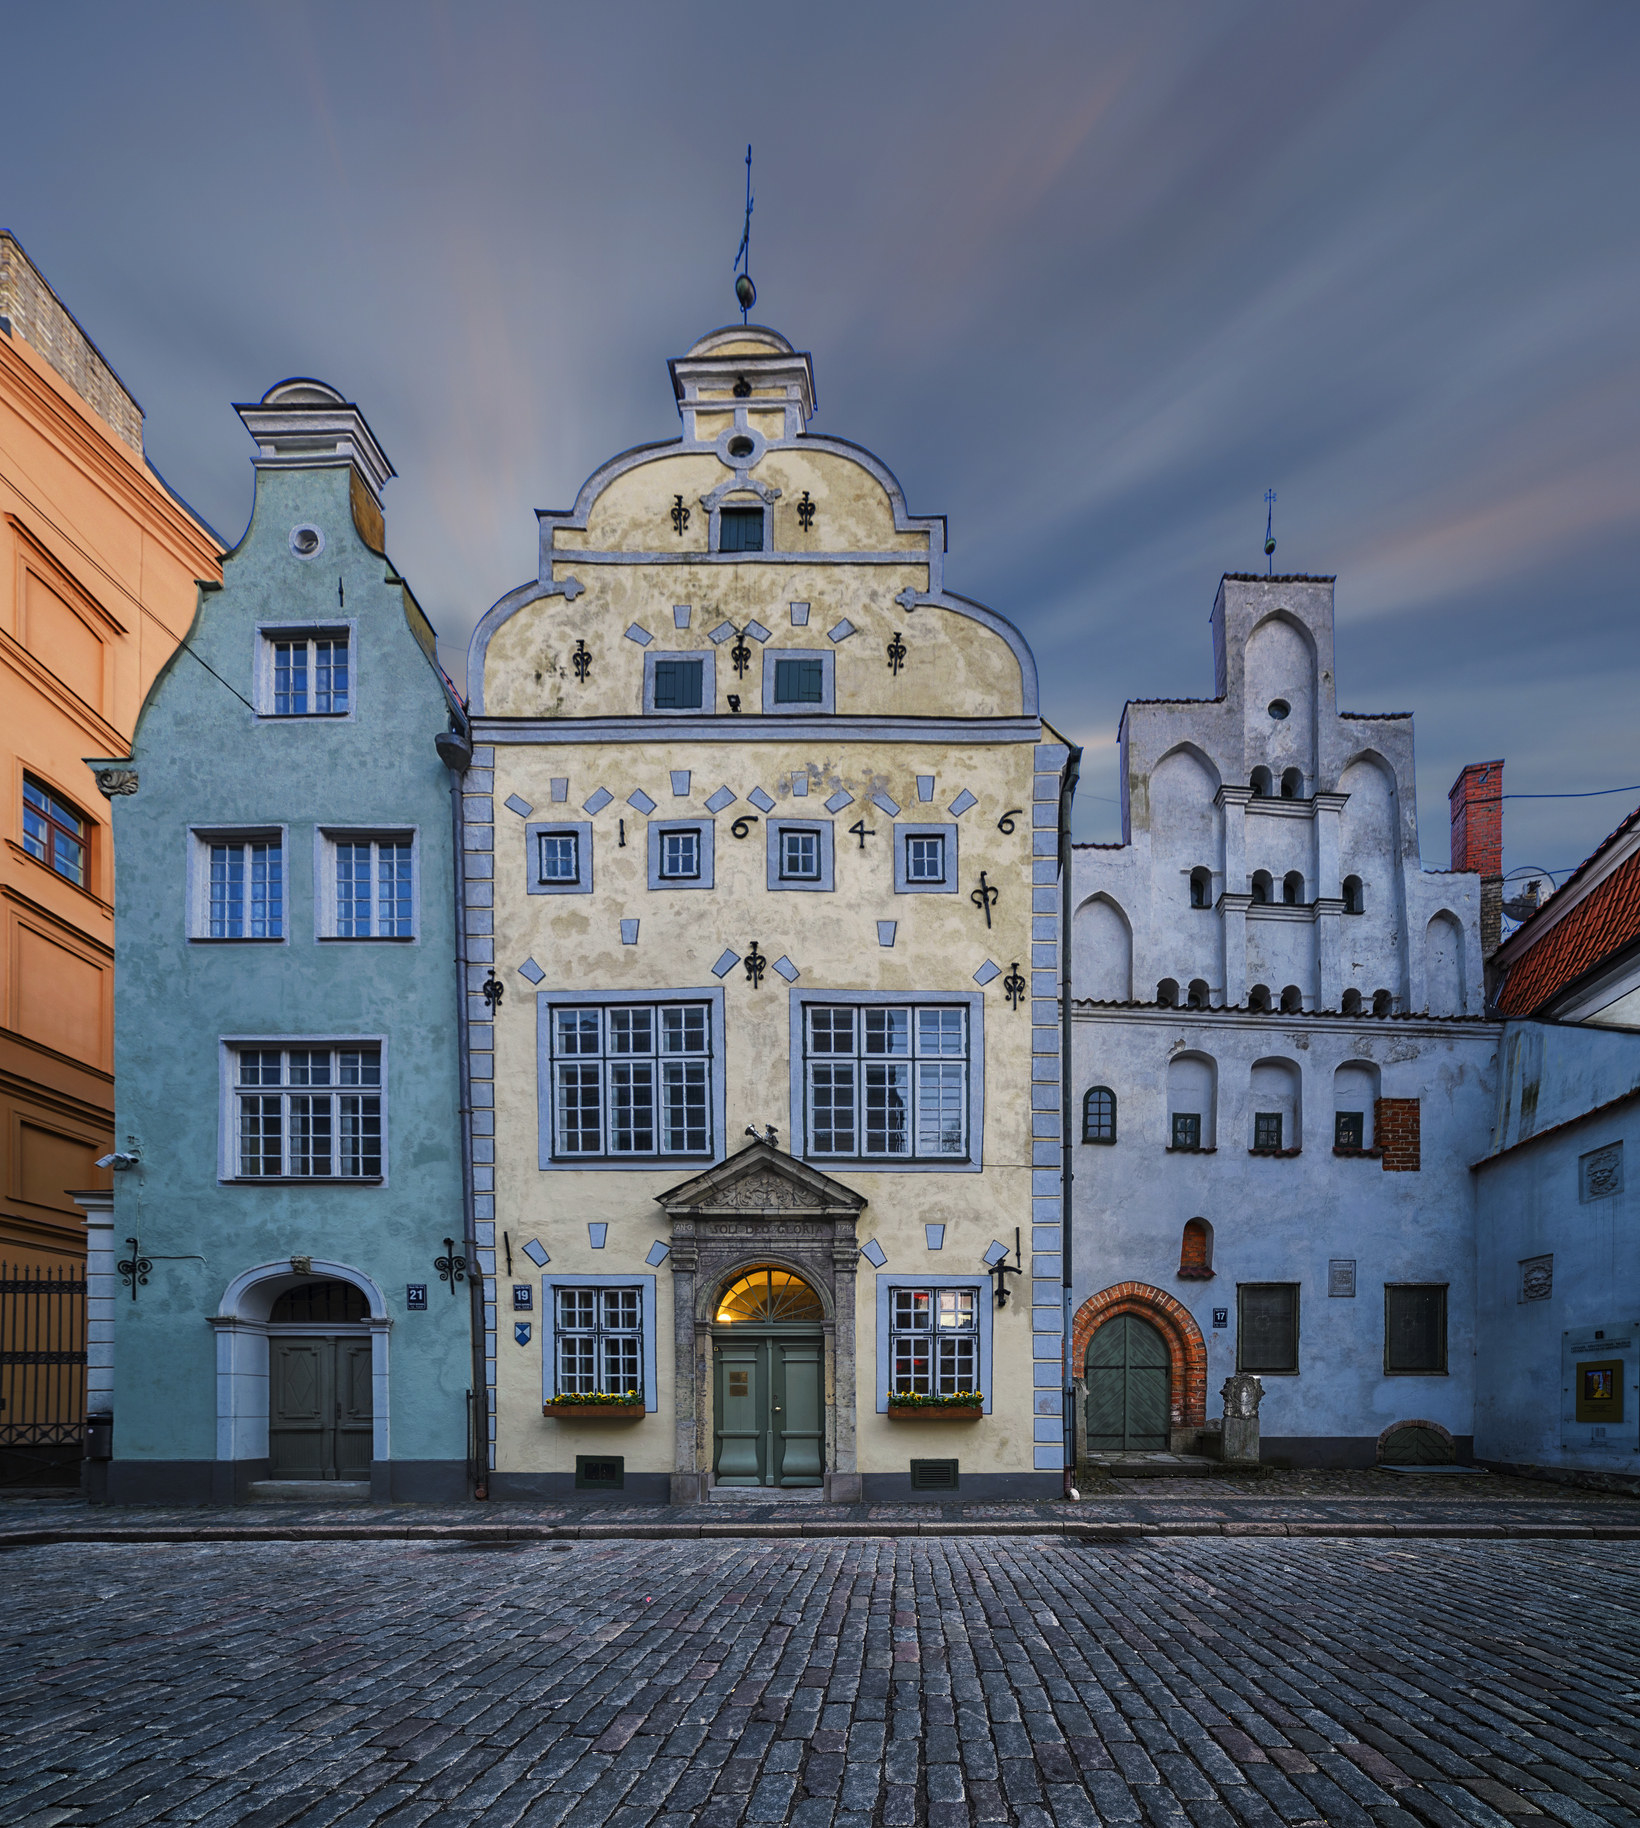 The Residence of the three brothers in Riga, Latvia.